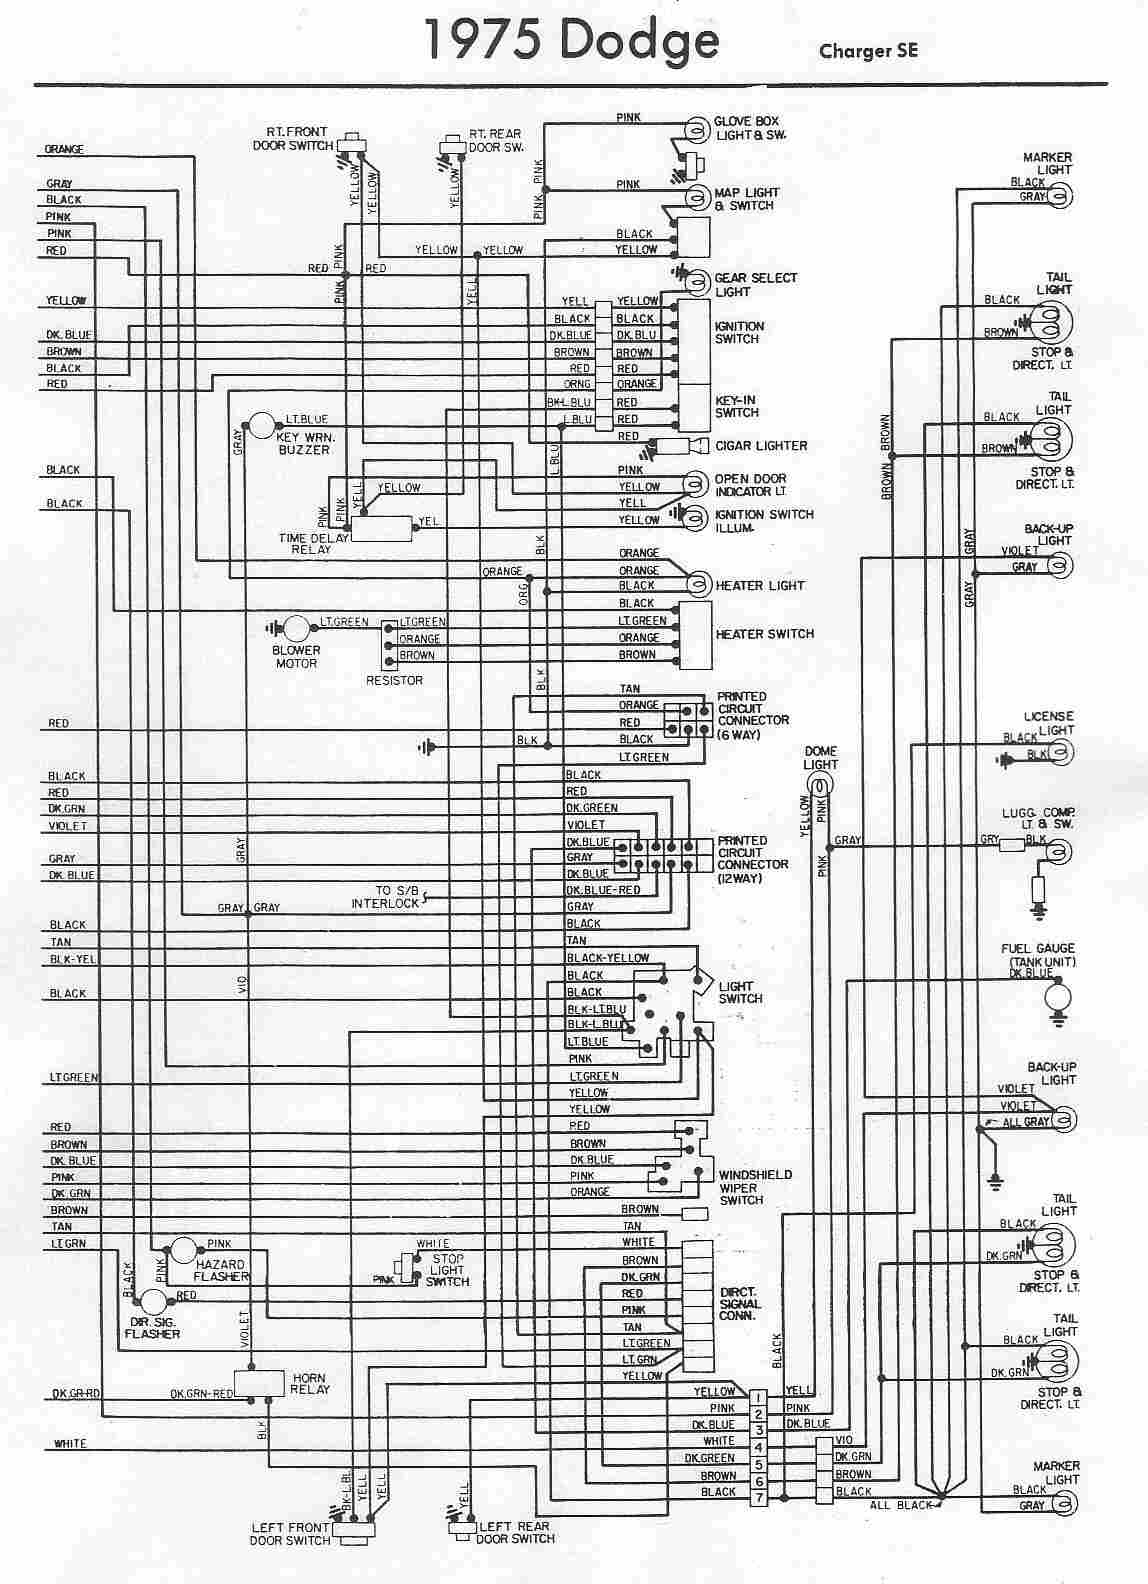 2014 Dodge Charger Stereo Wiring Diagram